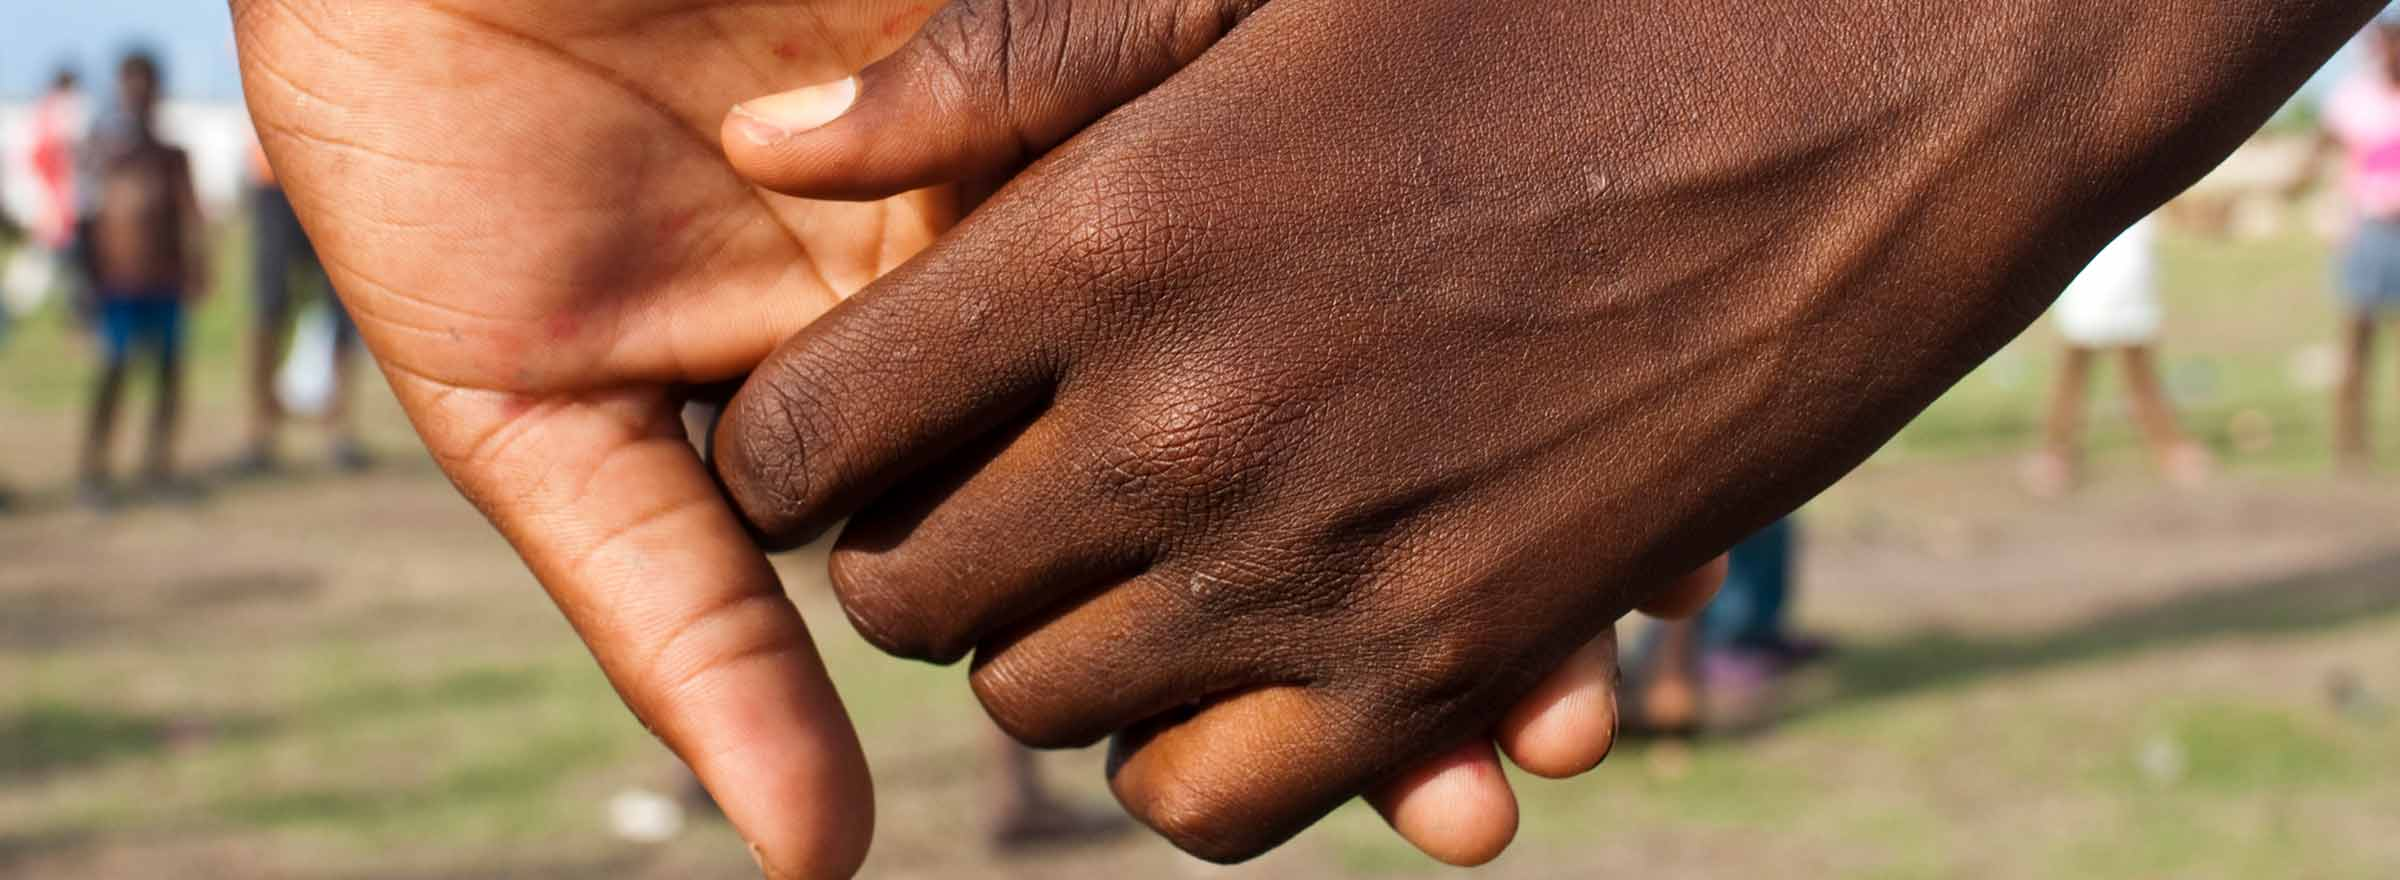 two hands joined together, representing how a nonprofit in Haiti used Intuit QuickBooks to better achieve its mission and build sustainable communities